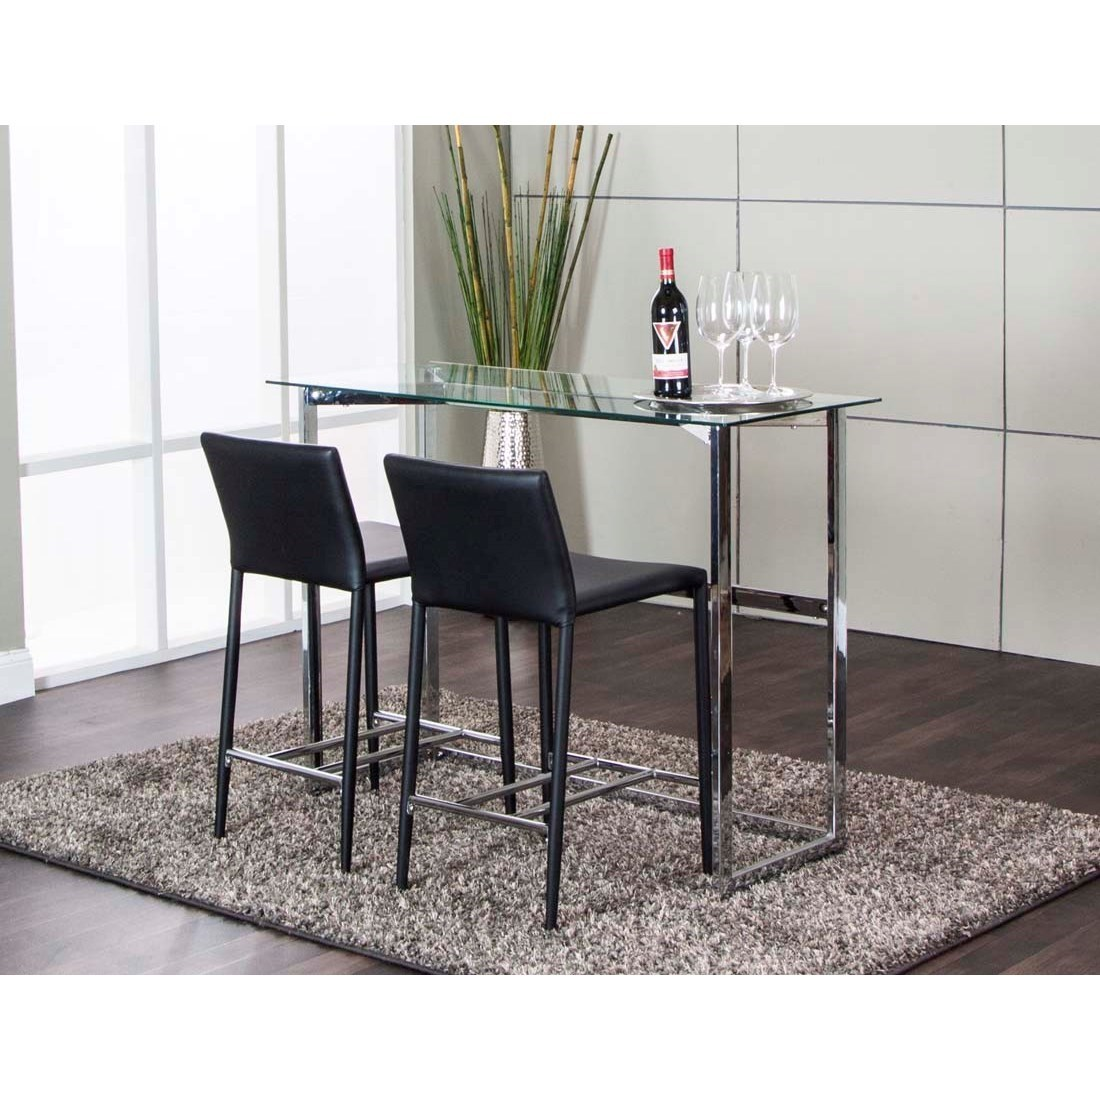 Abbott 3-Piece Counter Height Table and Chair Set by Cramco, Inc at Lapeer Furniture & Mattress Center